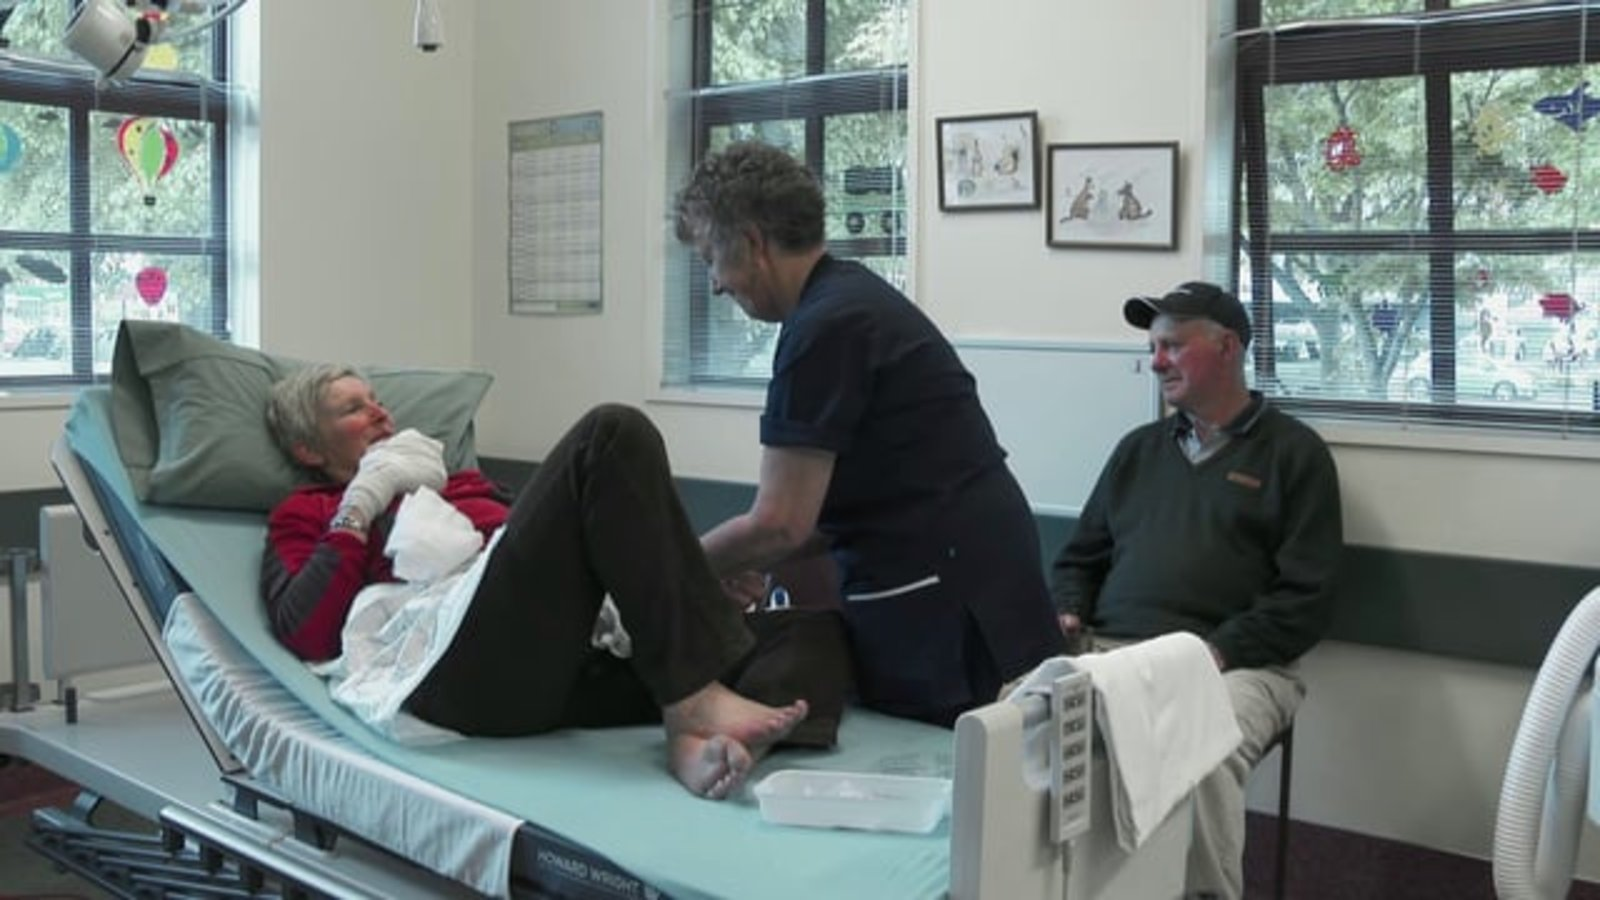 Emergency Medicine: A Year at Oamaru Hospital